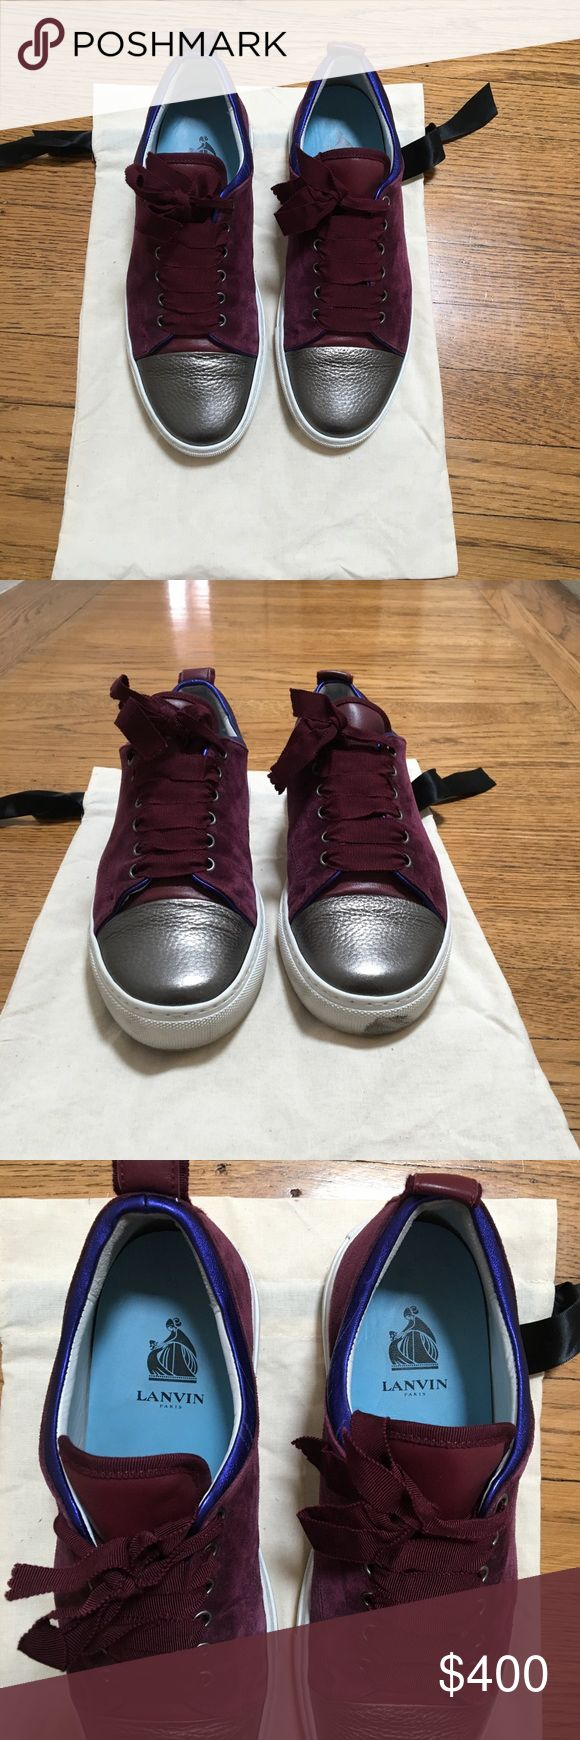 Lanvin Sneakers Lanvin Sneakers in GREAT condition! Only worn a handful of times. Purchased at Harvey Nichols in 2016.  Size 10 Women's Original Price $695  Selling for $400 obo Only a few scuffs on the sole but suede and leather on the shoe in great condition. Comes with original dust bag Lanvin Shoes Sneakers